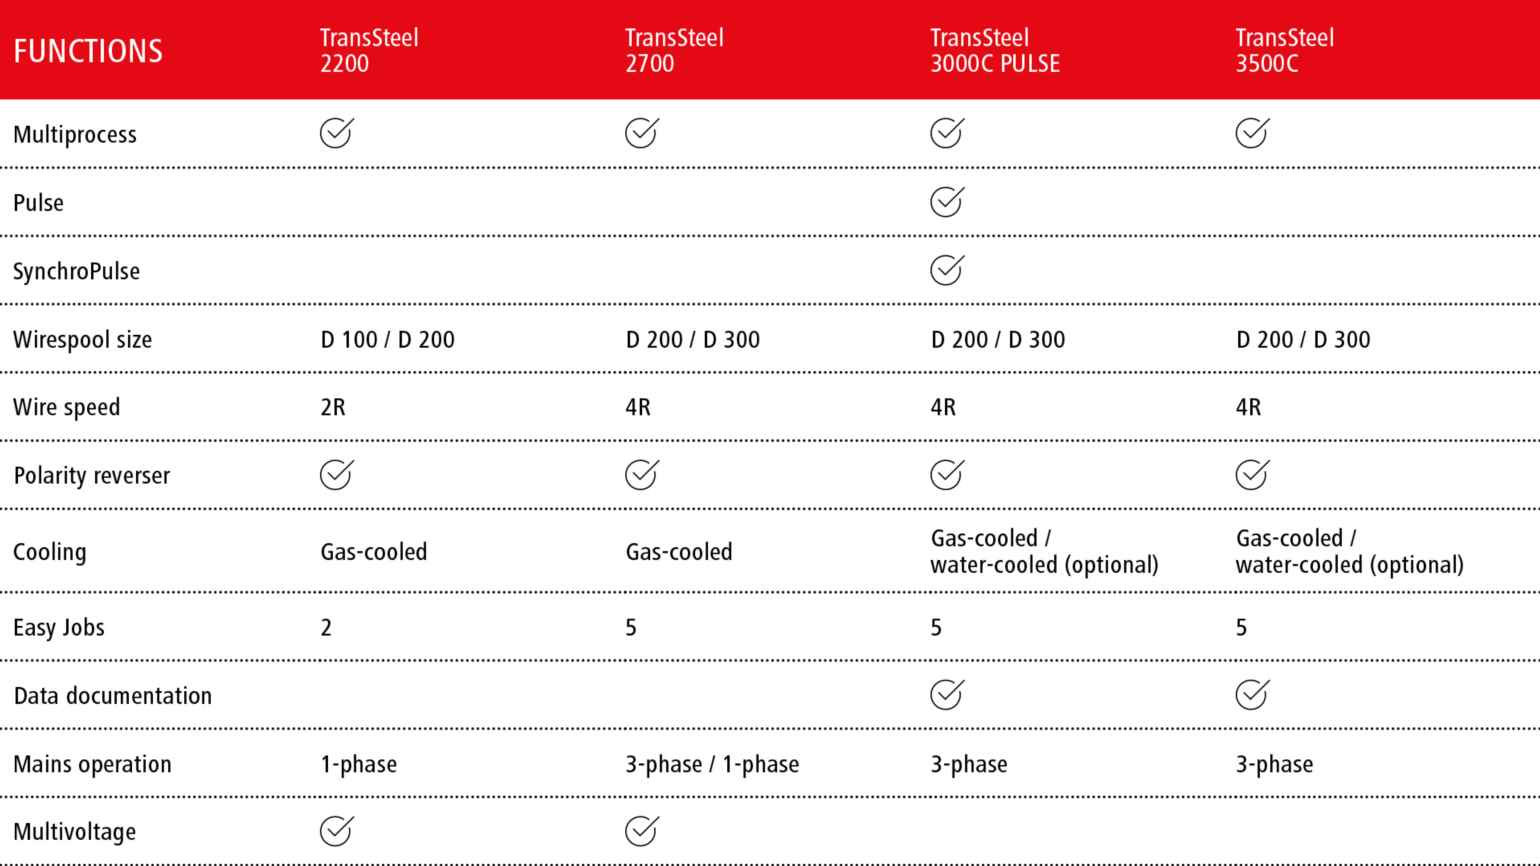 Fronius TransSteel models comparison chart